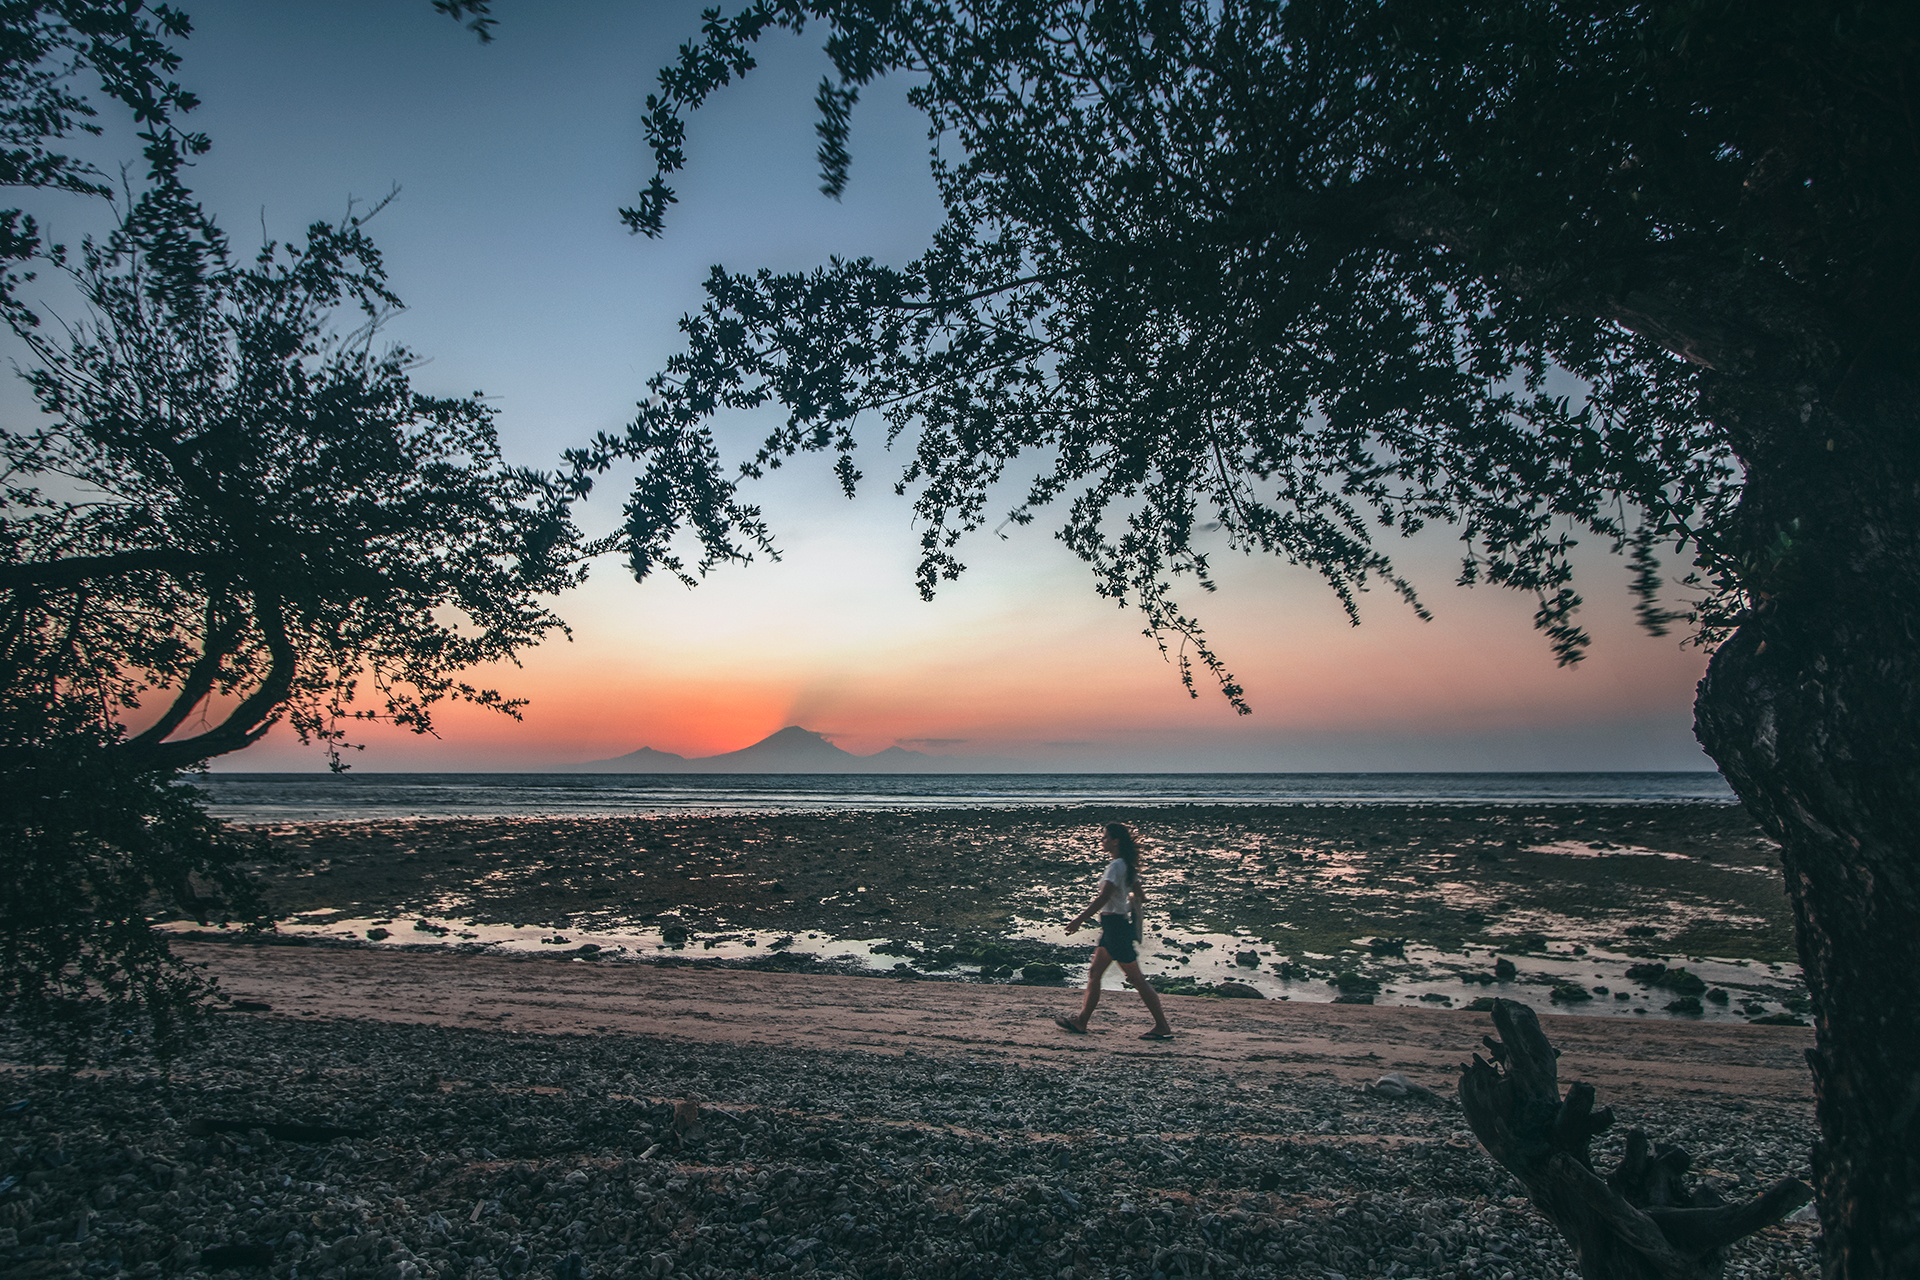 Sunset over Mount Agung, Gili Trawangan | Can I travel to the Gili Islands after the earthquakes?